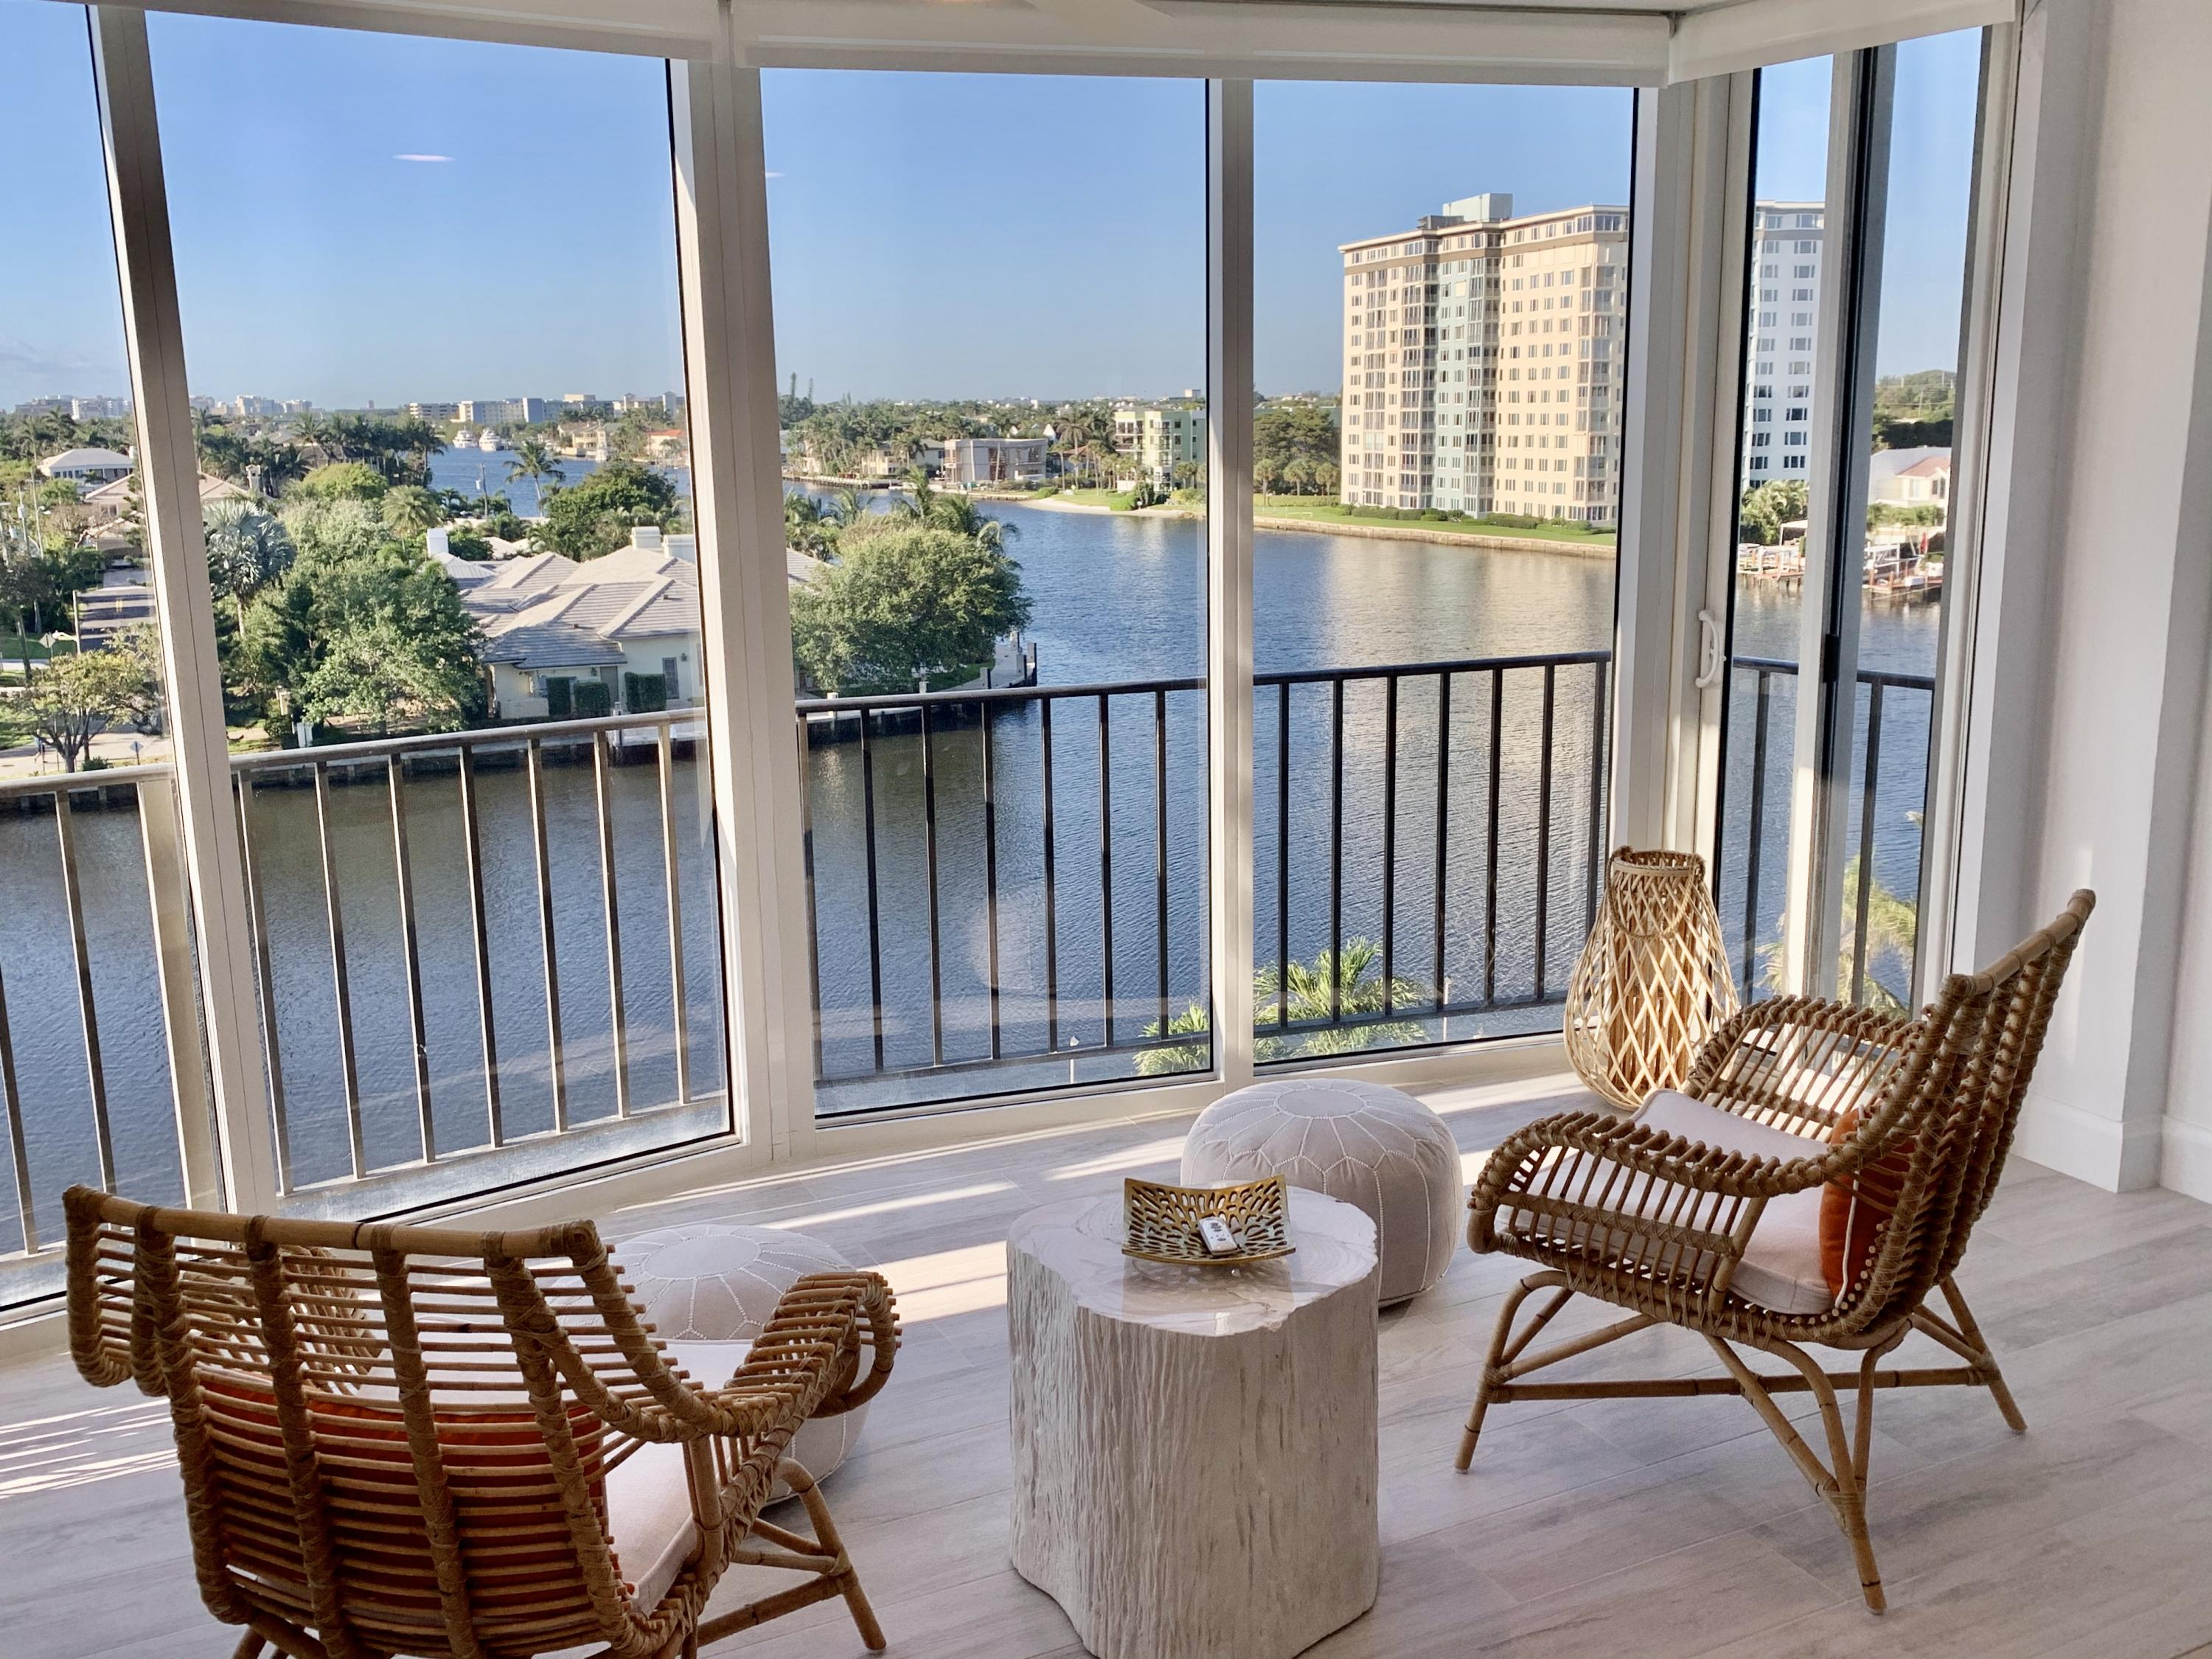 400 Seasage Drive, Delray Beach, Florida 33483, 2 Bedrooms Bedrooms, ,2 BathroomsBathrooms,Condo/coop,For Sale,Seasage,RX-10614798